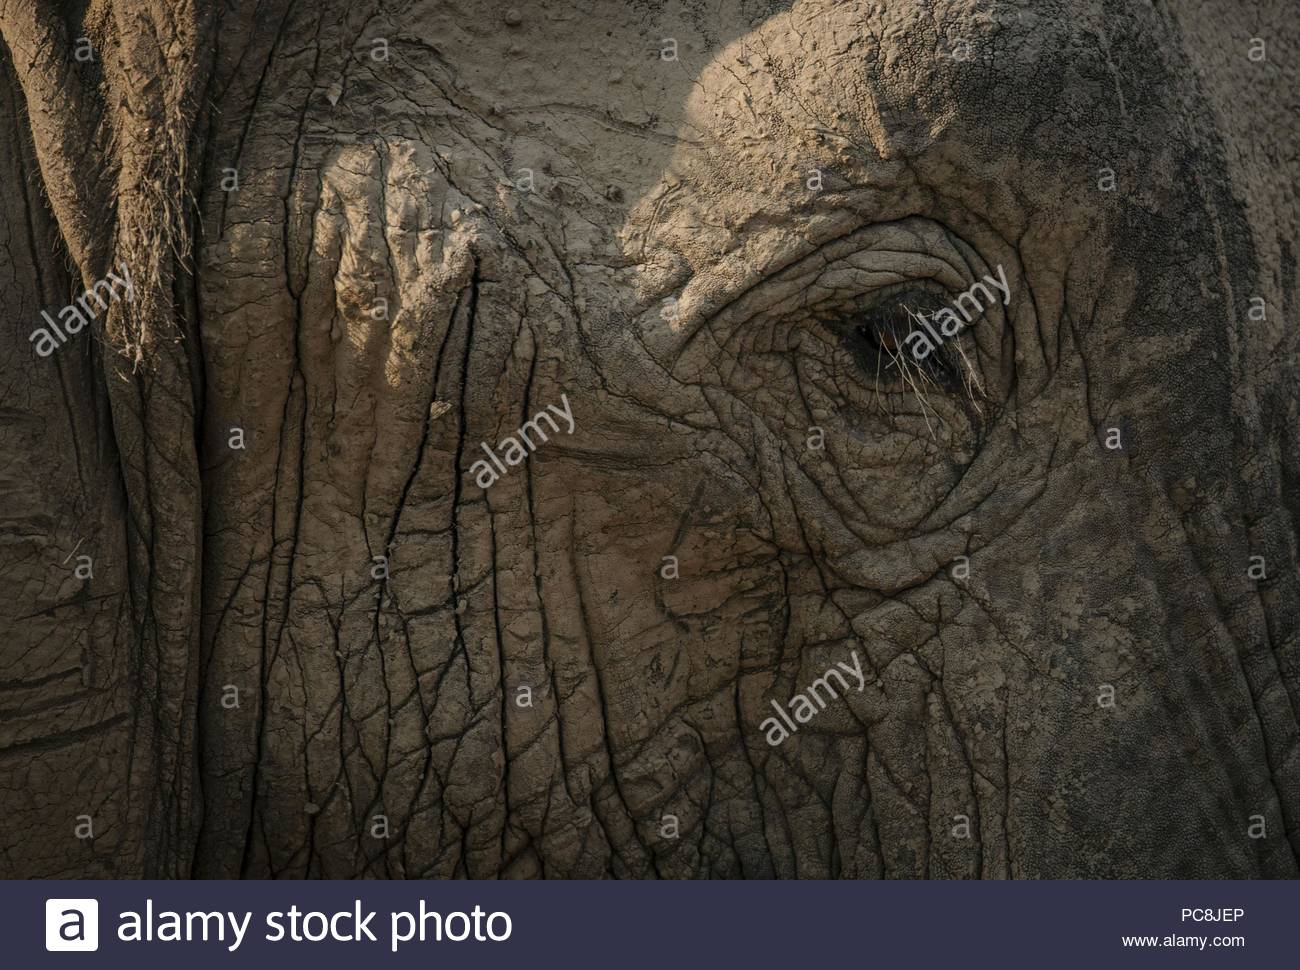 Close-up of an African elephant, Loxodonta africana, covered by mud. - Stock Image